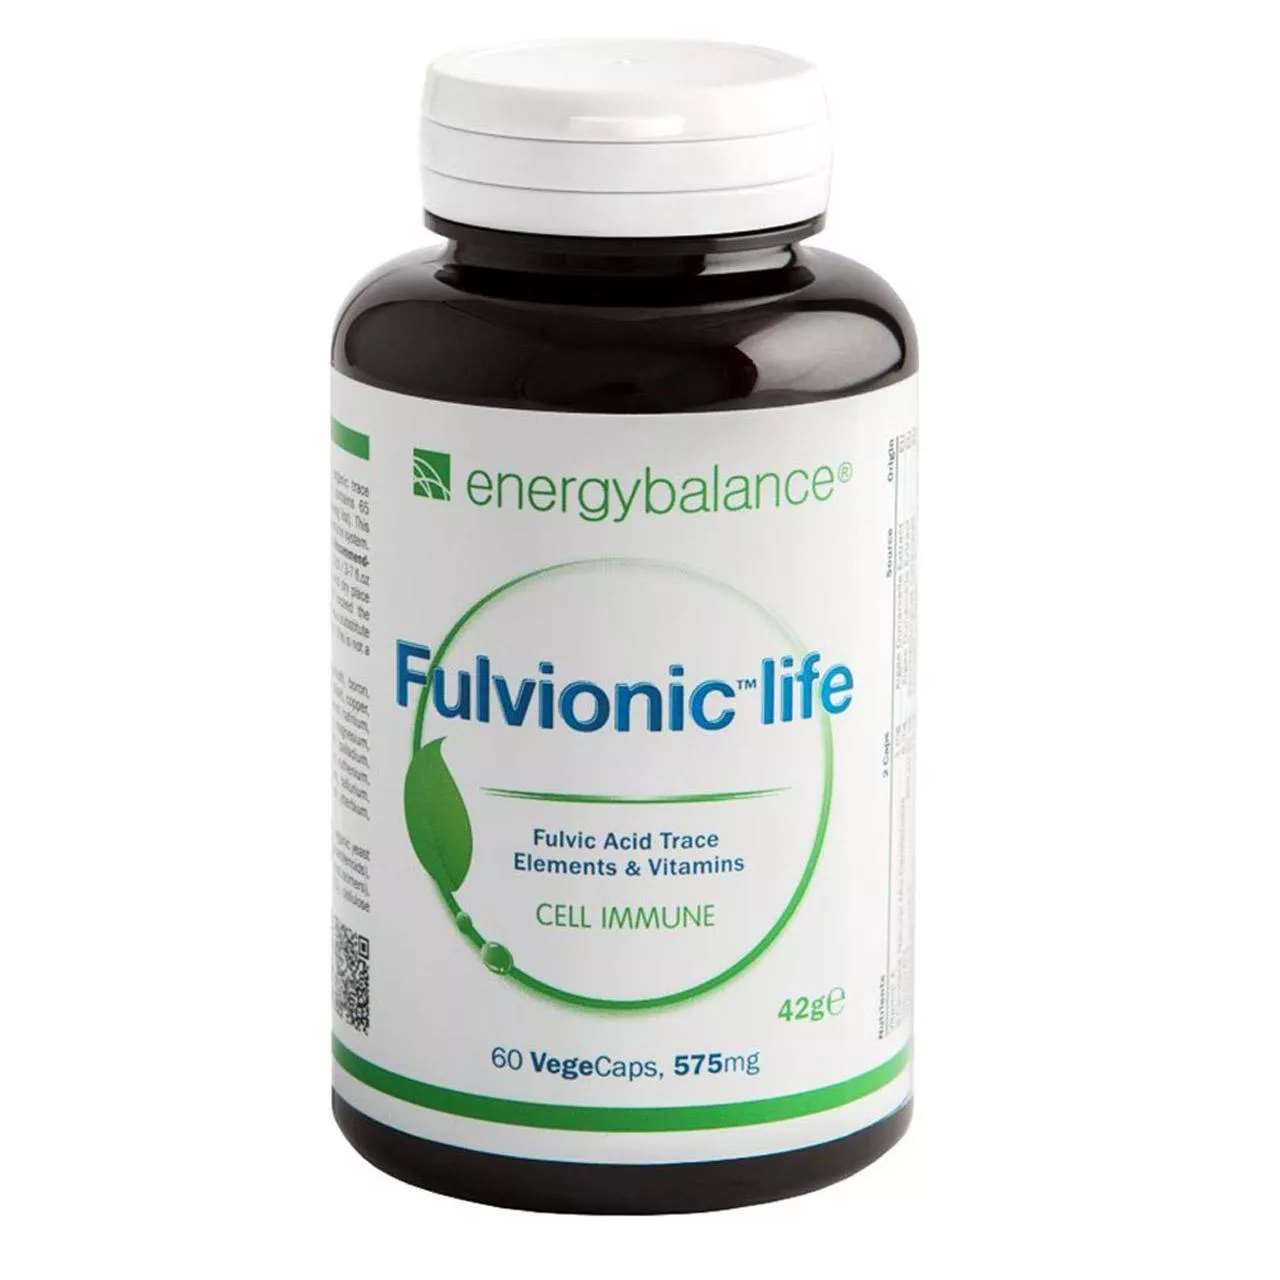 Fulvionic life, 60 VegeCaps